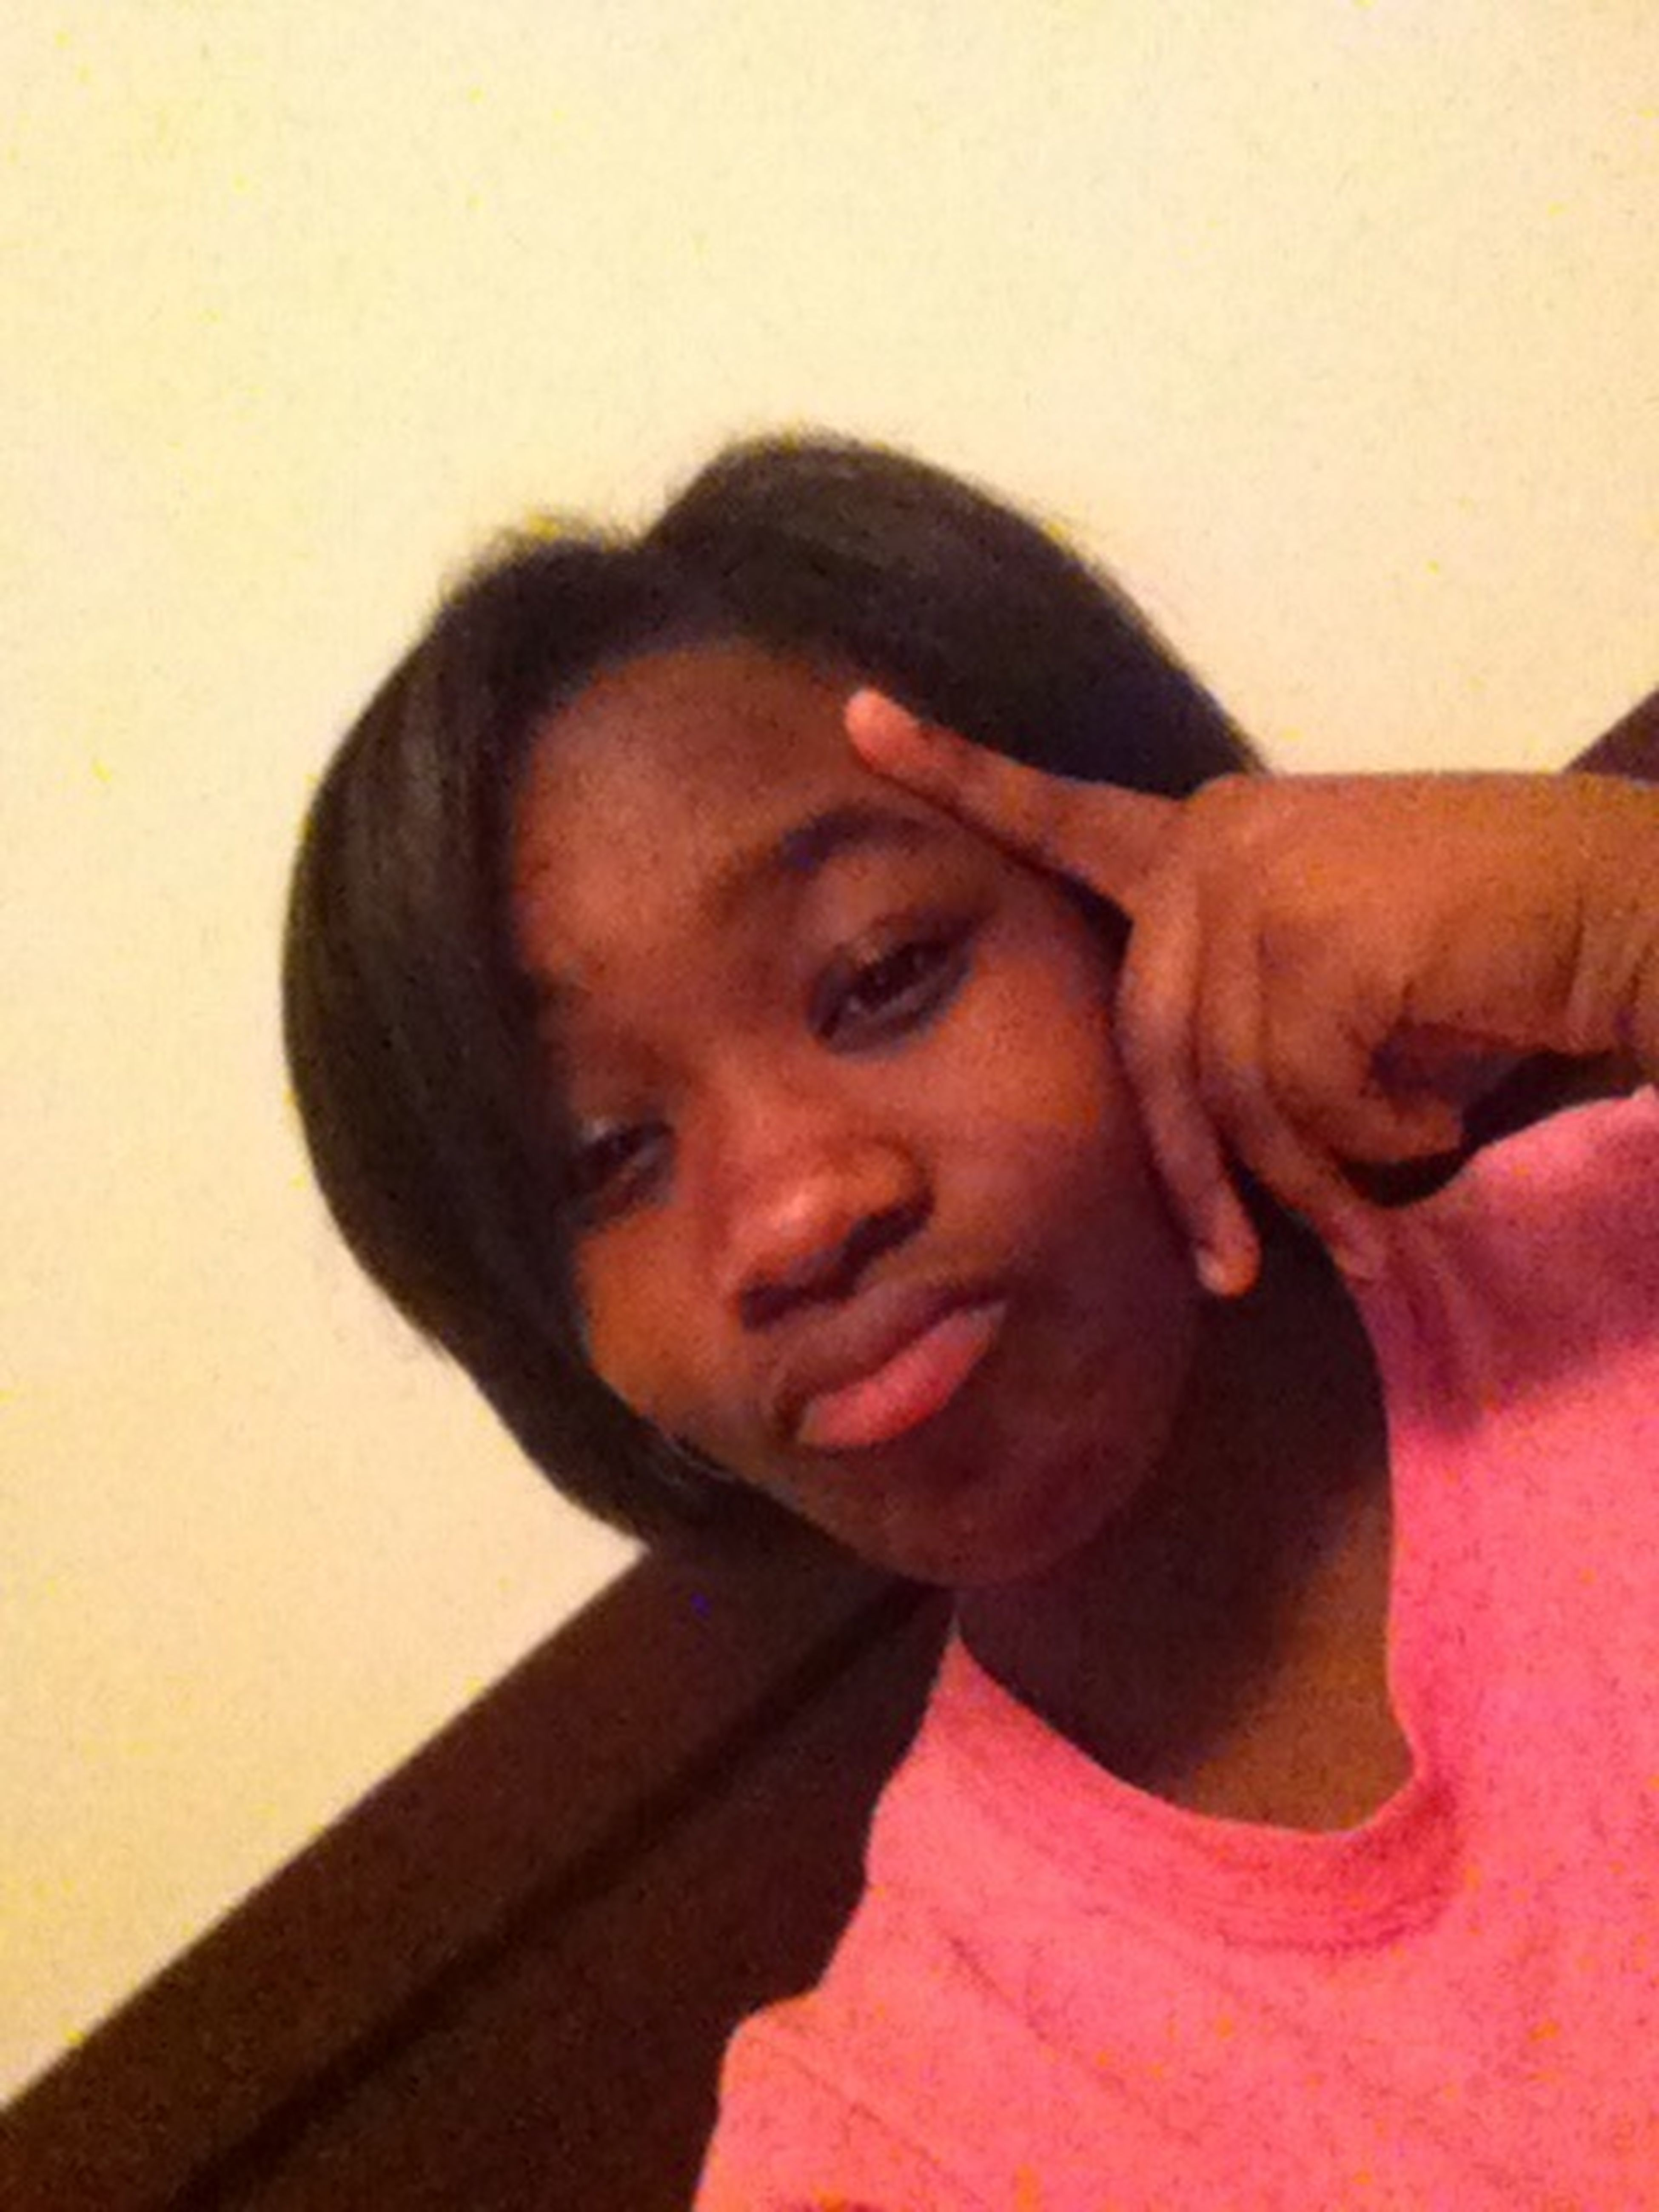 Too Bored ,,, Mi phone dry asf sumbdy txt Mehh ,..